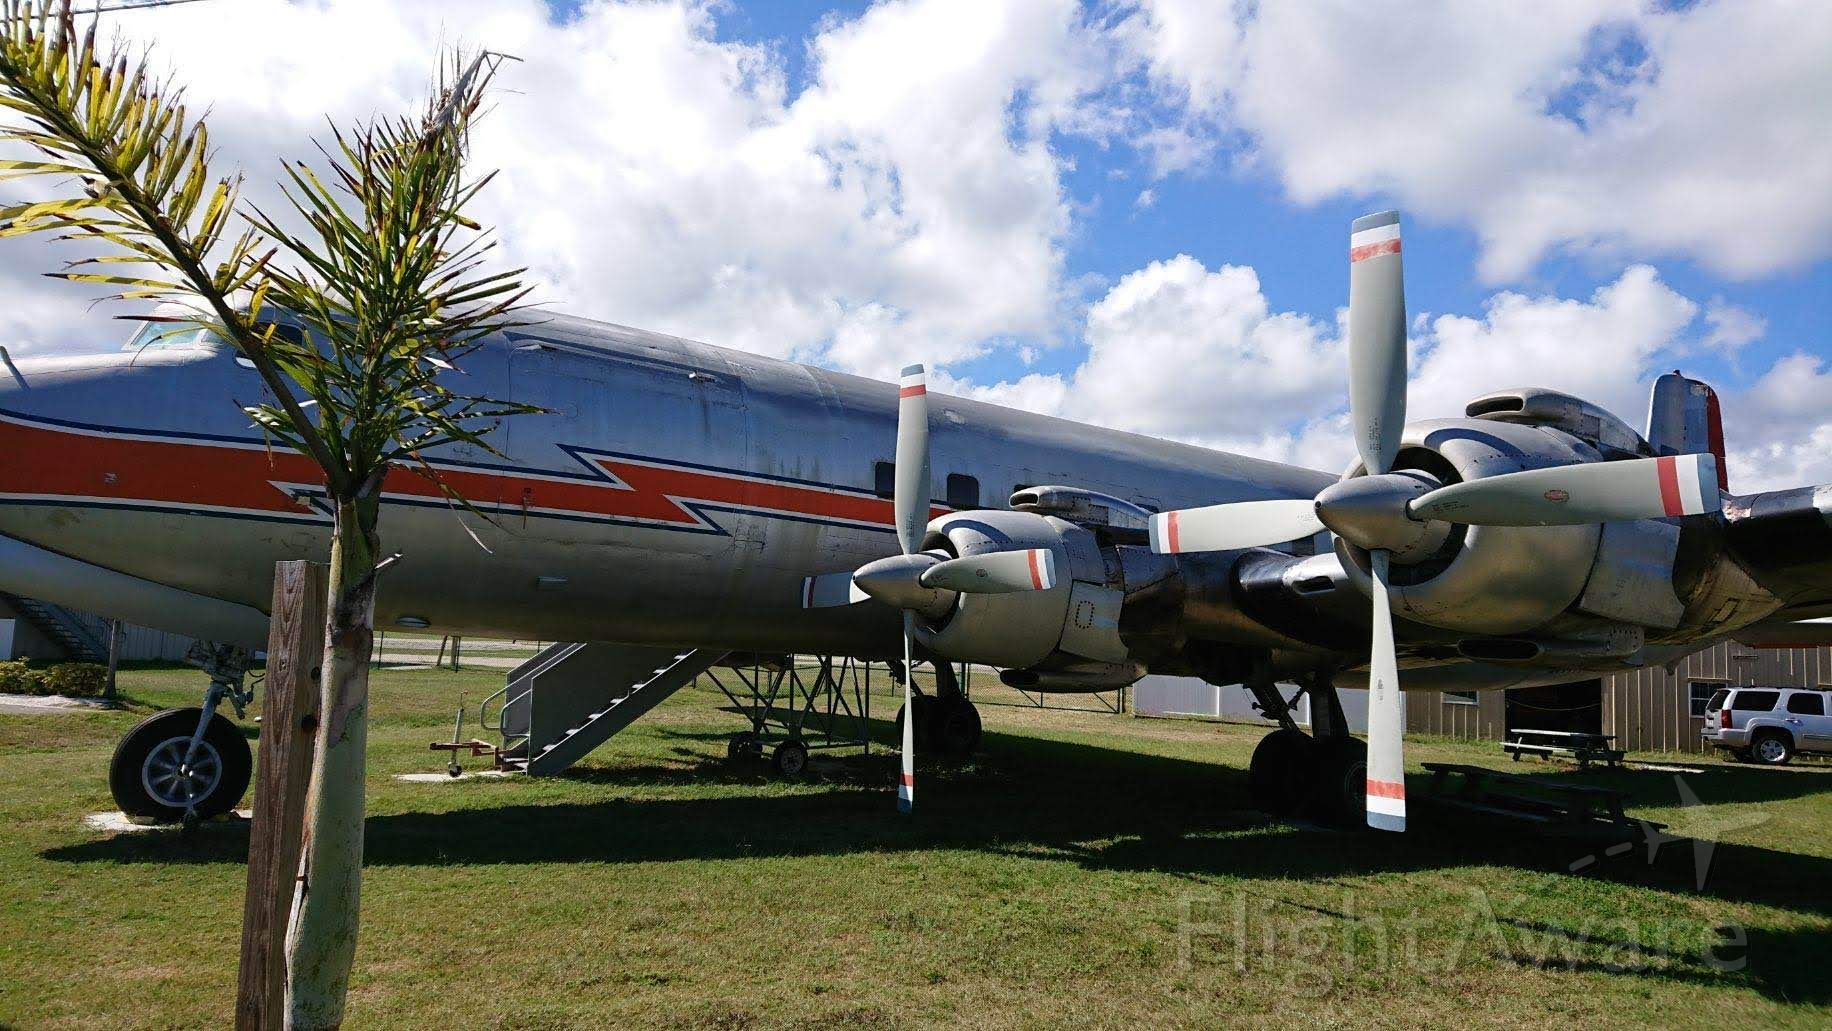 Douglas DC-7 (N381AA) - A classic DC-7 resting among some palm trees in New Smyrna, FL.